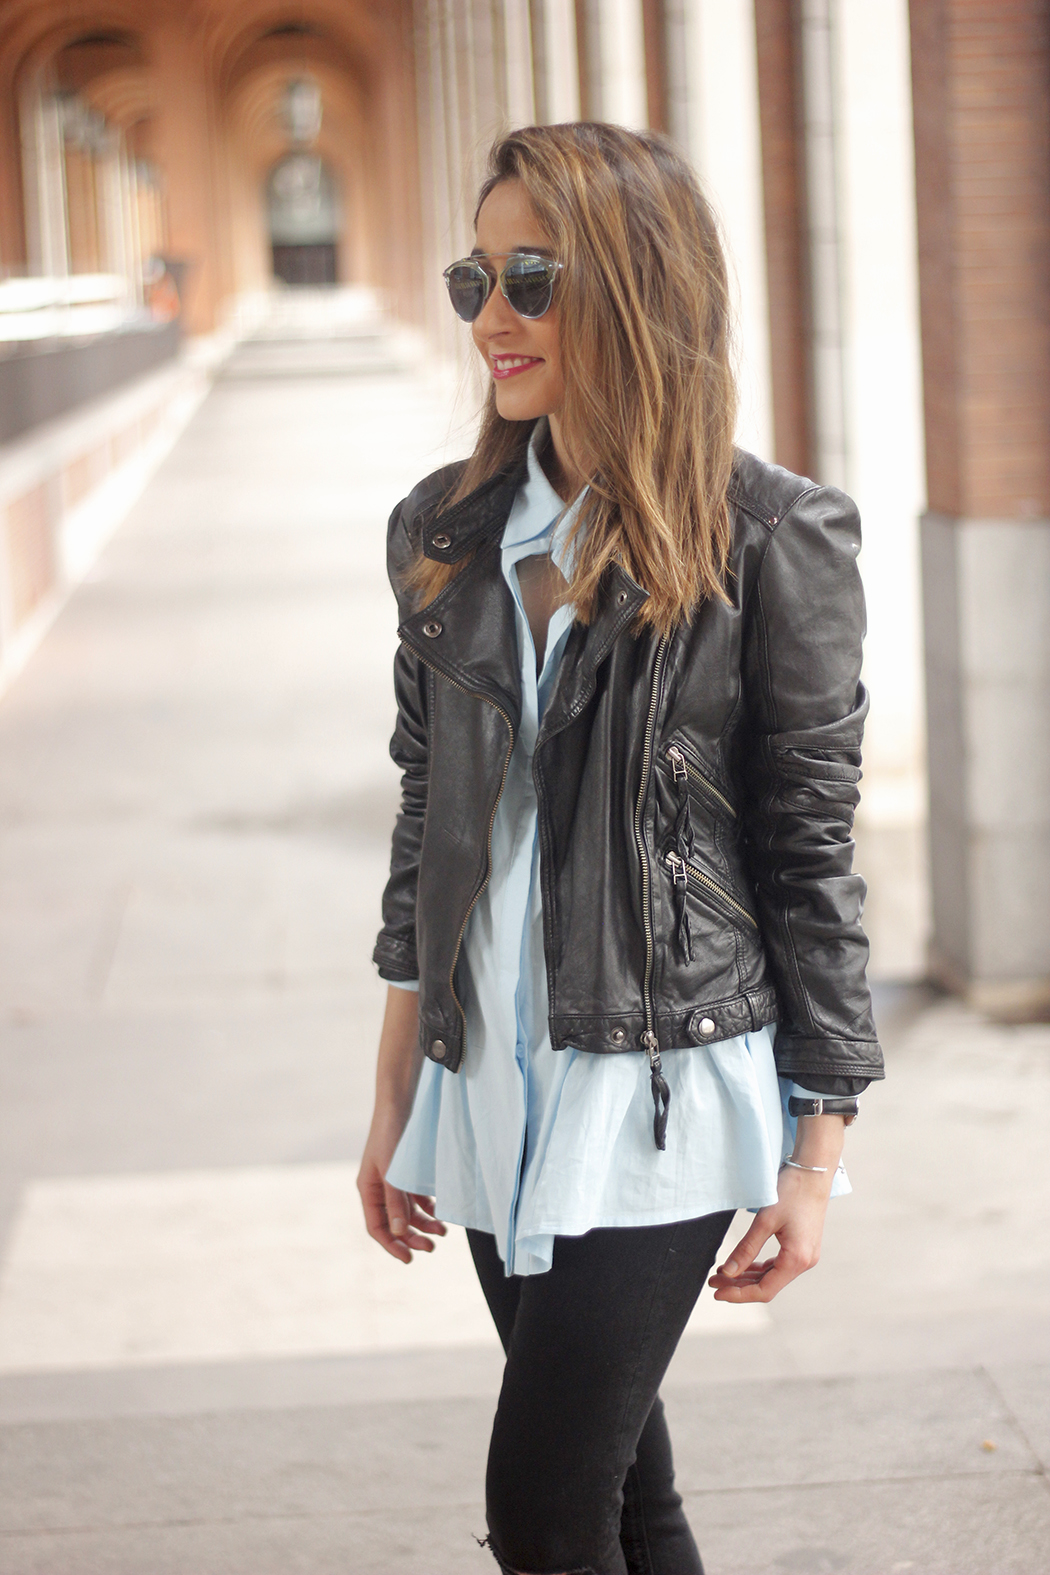 black leather biker black ripped jeans blue shirt outfit streetstyle11